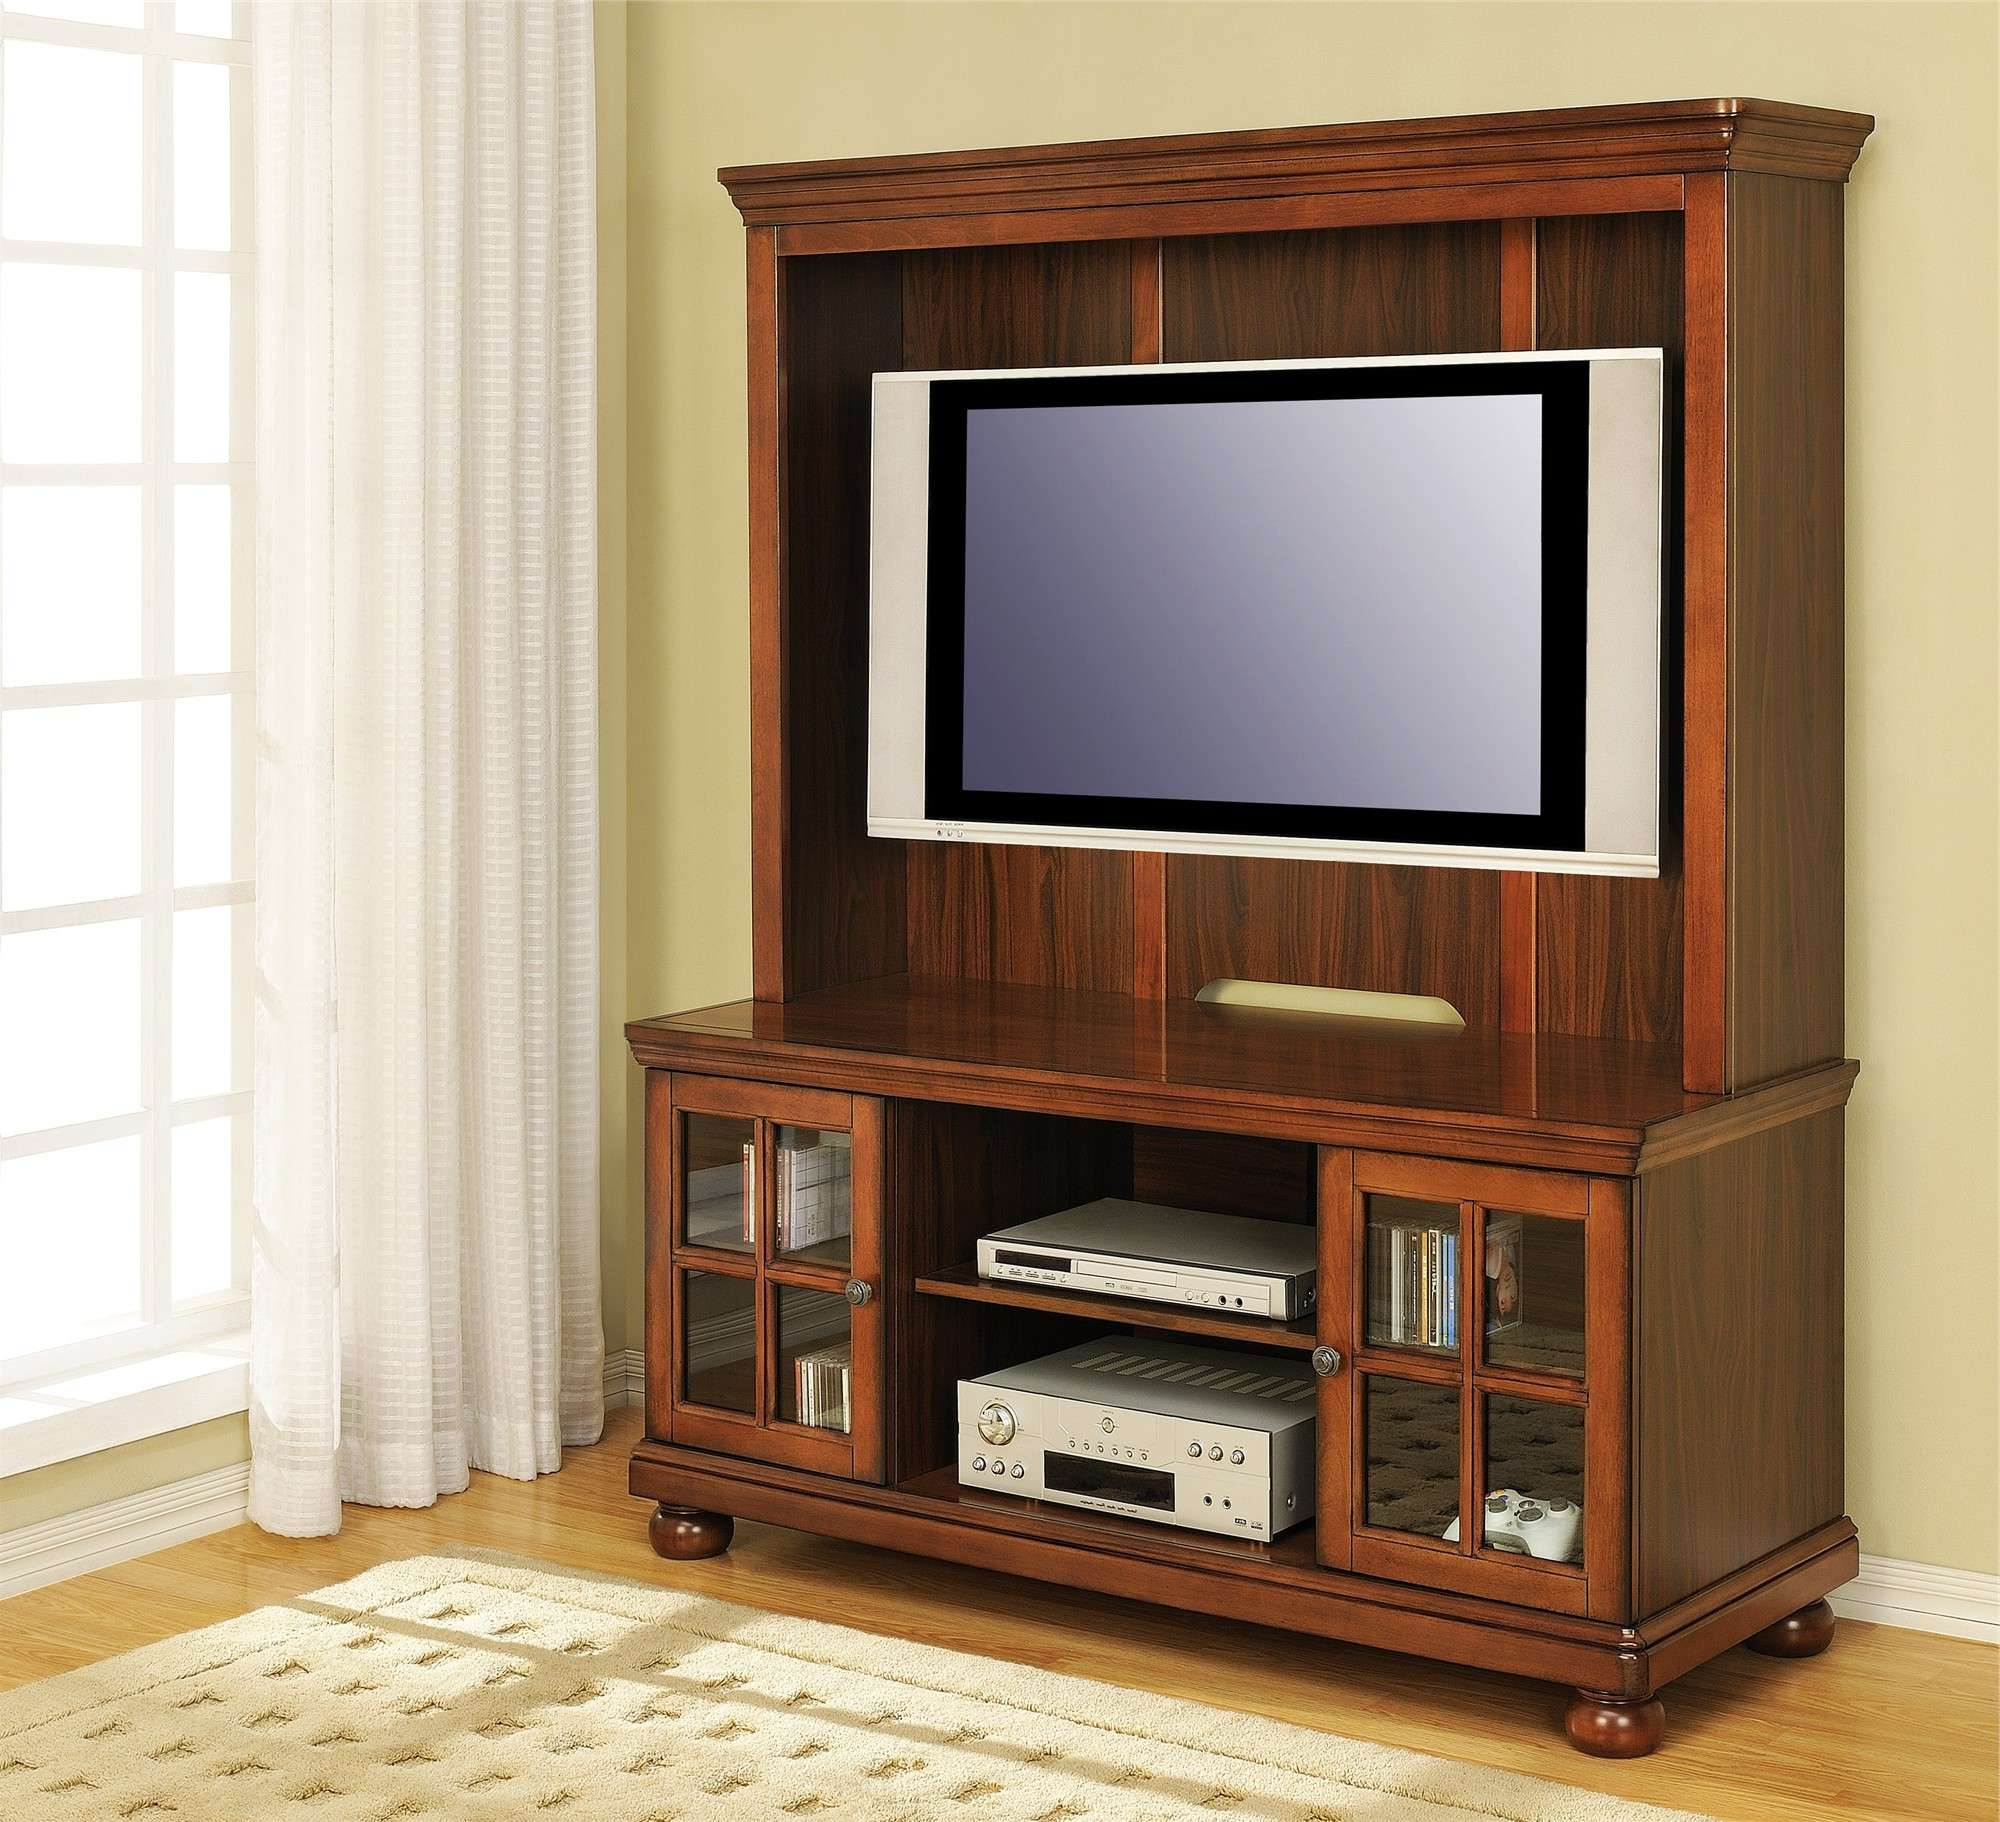 Modern Brown Oak Wood Media Cabinet With Mounted Tv Storage Regarding Corner Tv Cabinets For Flat Screens (View 13 of 20)